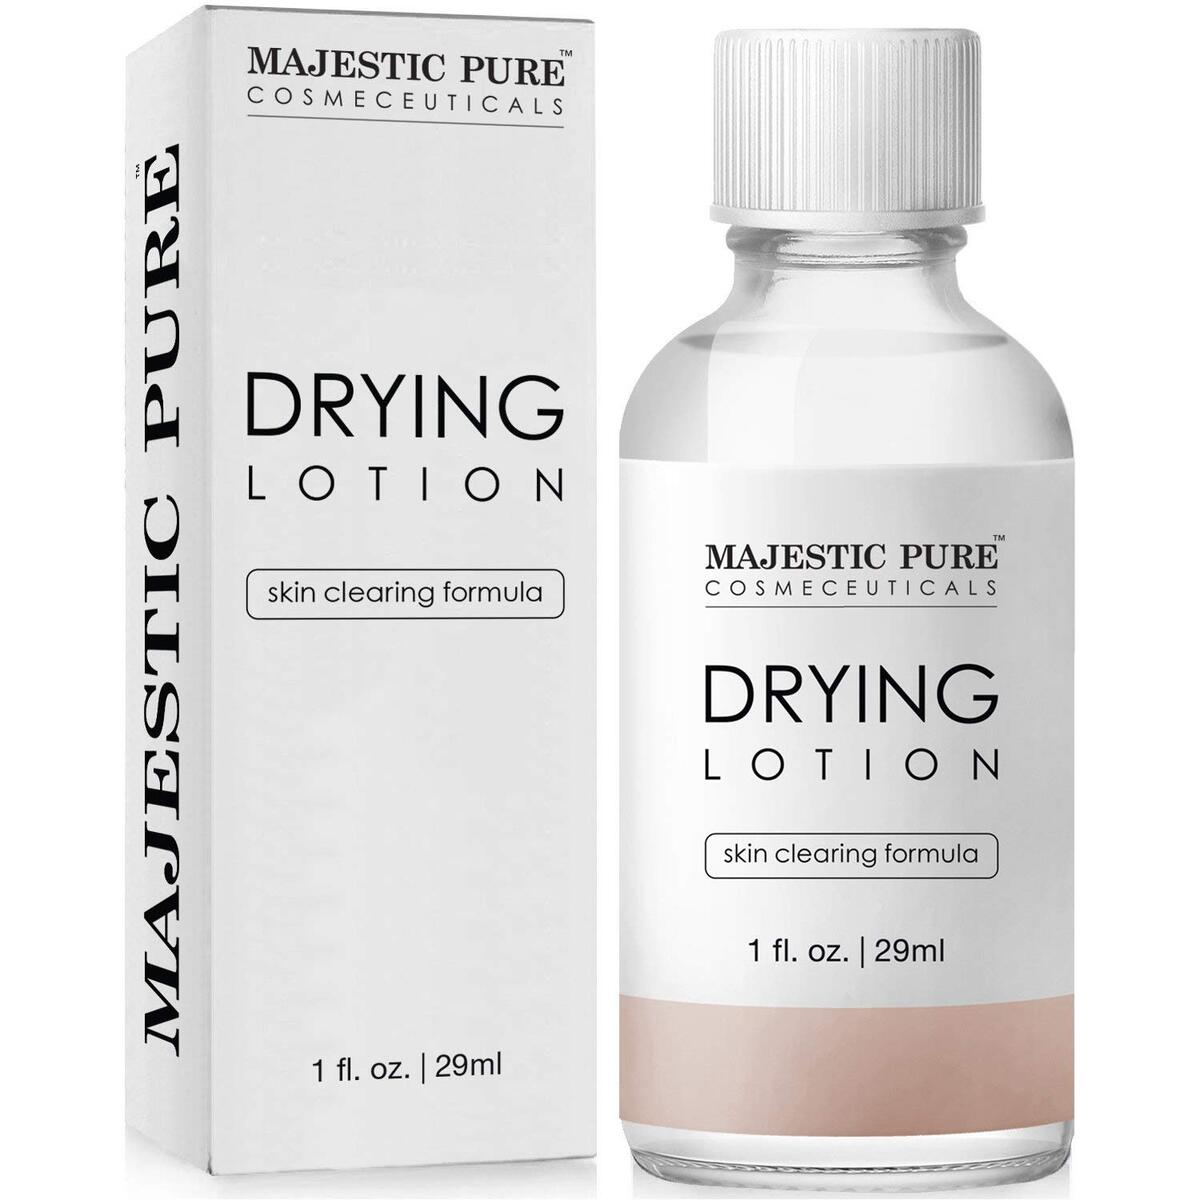 Acne Drying Lotion, Acne and Pimples Skin Care Formula, 1 fl. oz.